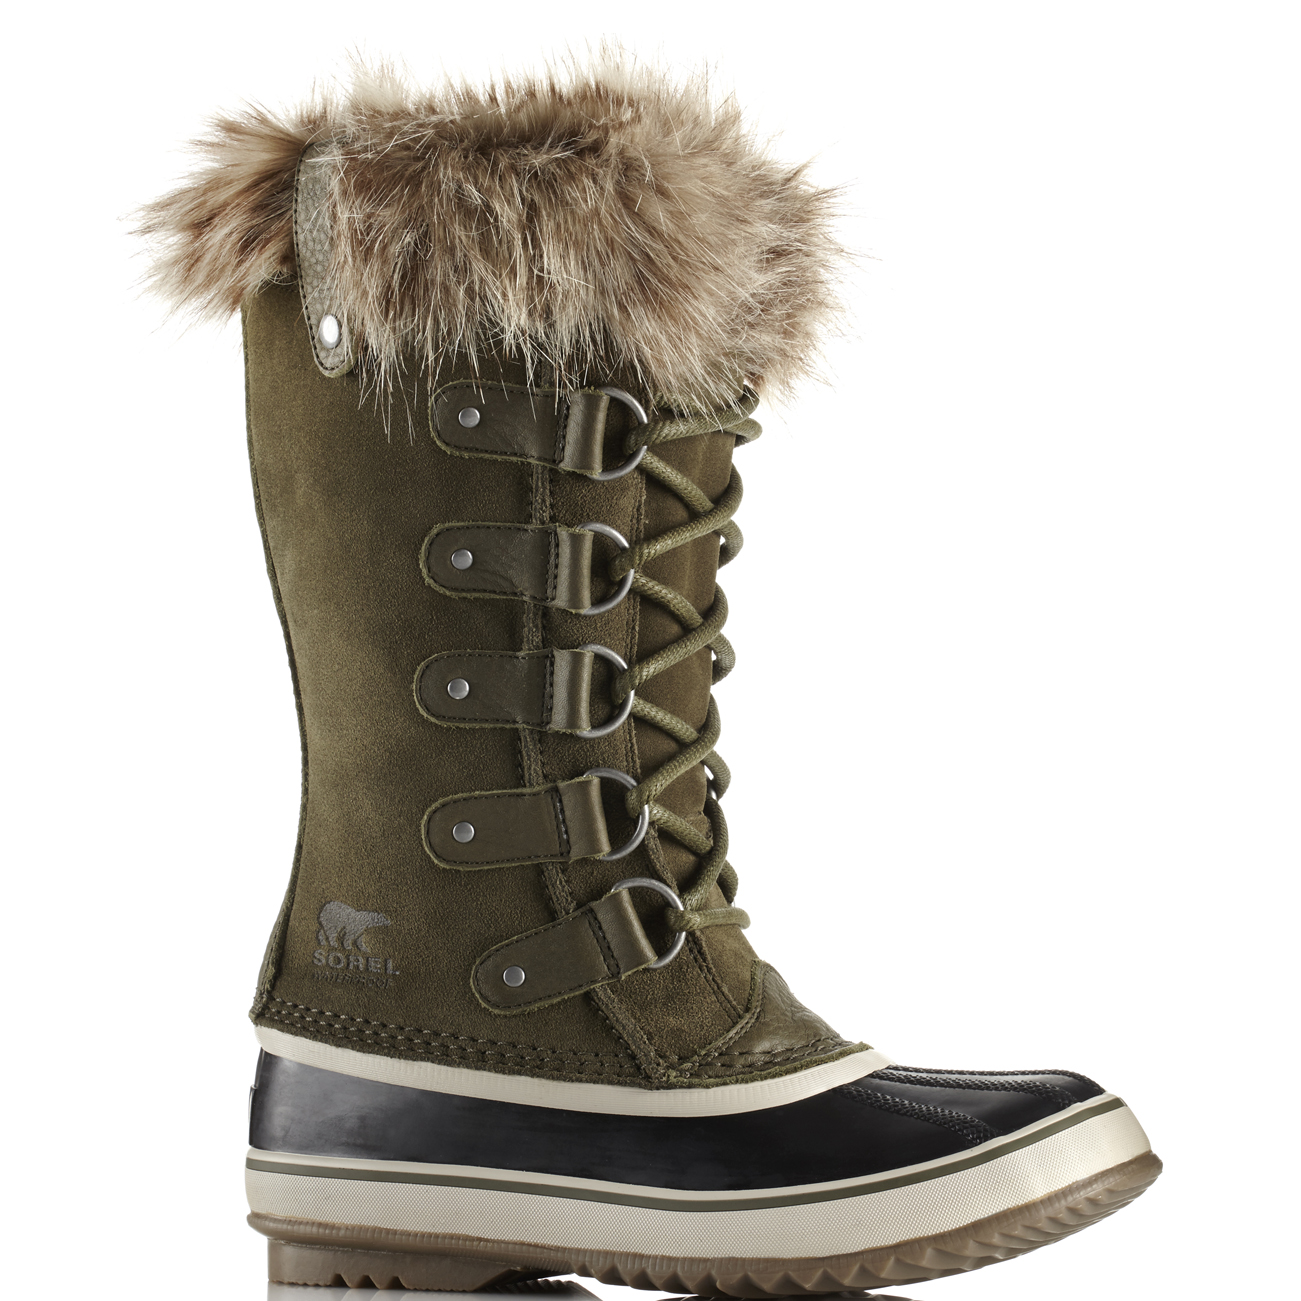 Ladies Sorel Joan Of Arctic Walking Trekking Snow Warm Hiking Boot All Sizes